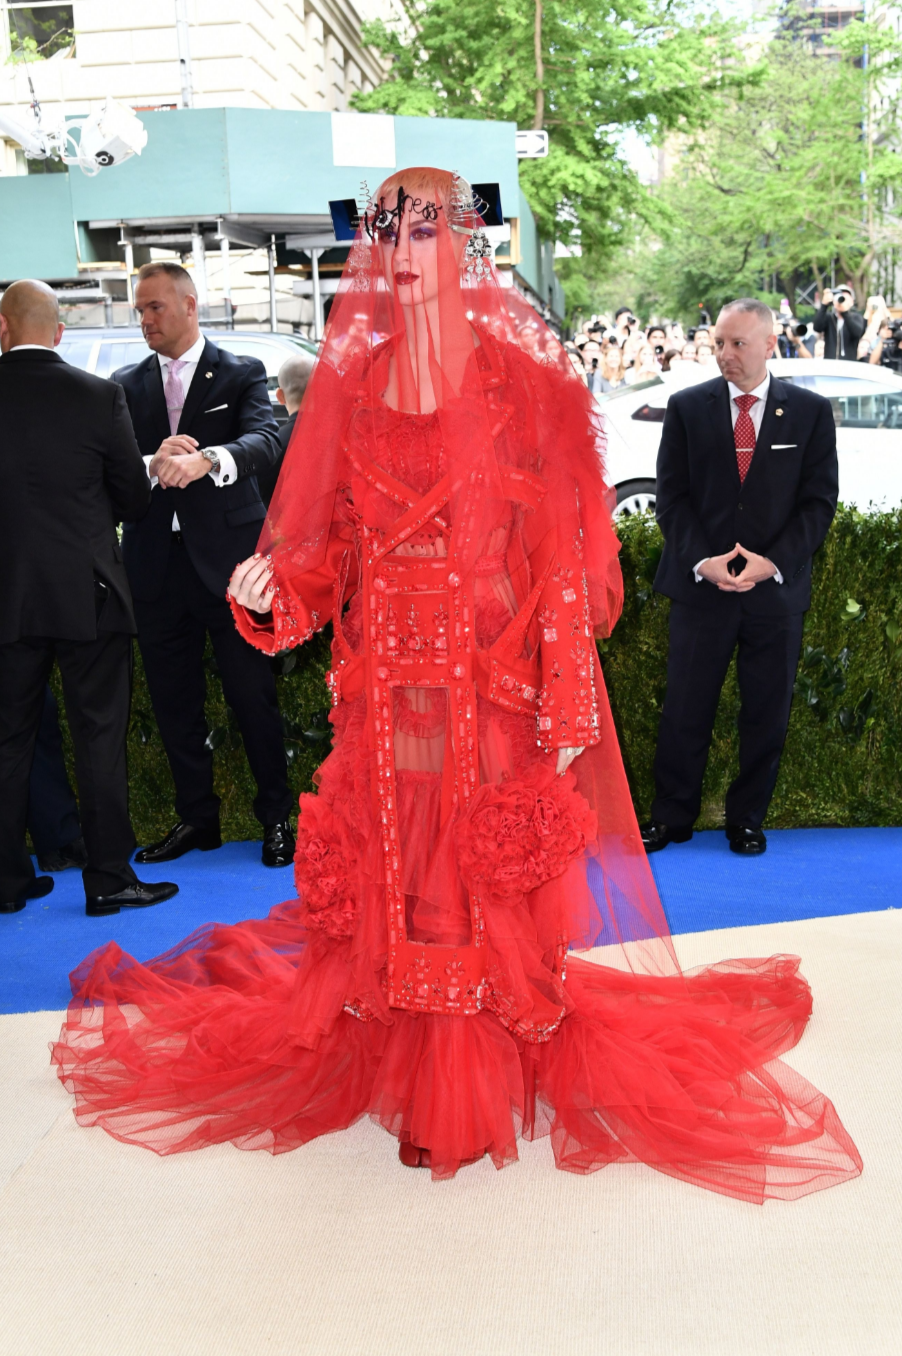 Katy Perry in John Galliano for Maison Margiela